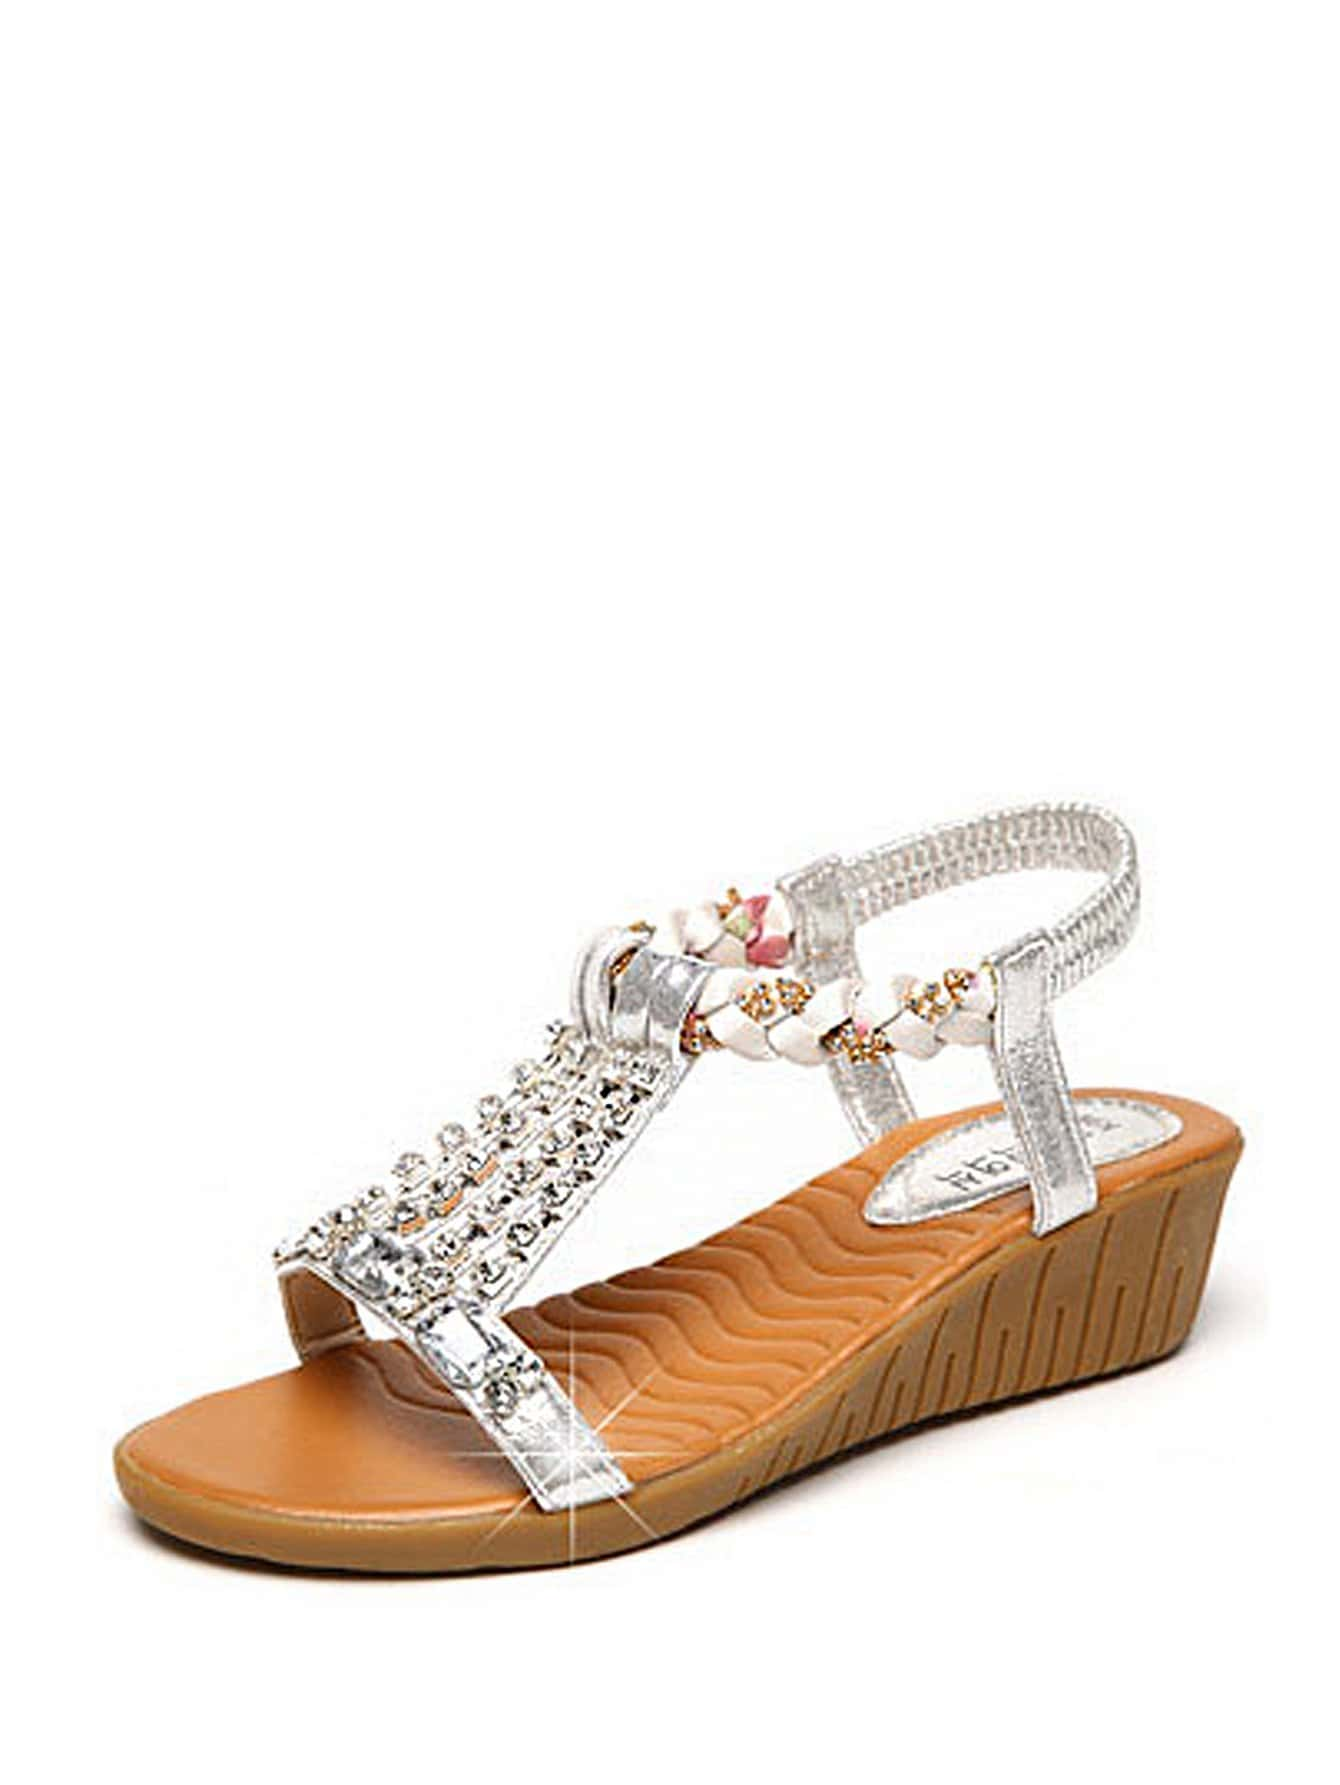 Rhinestone Detail Metallic Wedge Sandals rhinestone detail strappy sandals